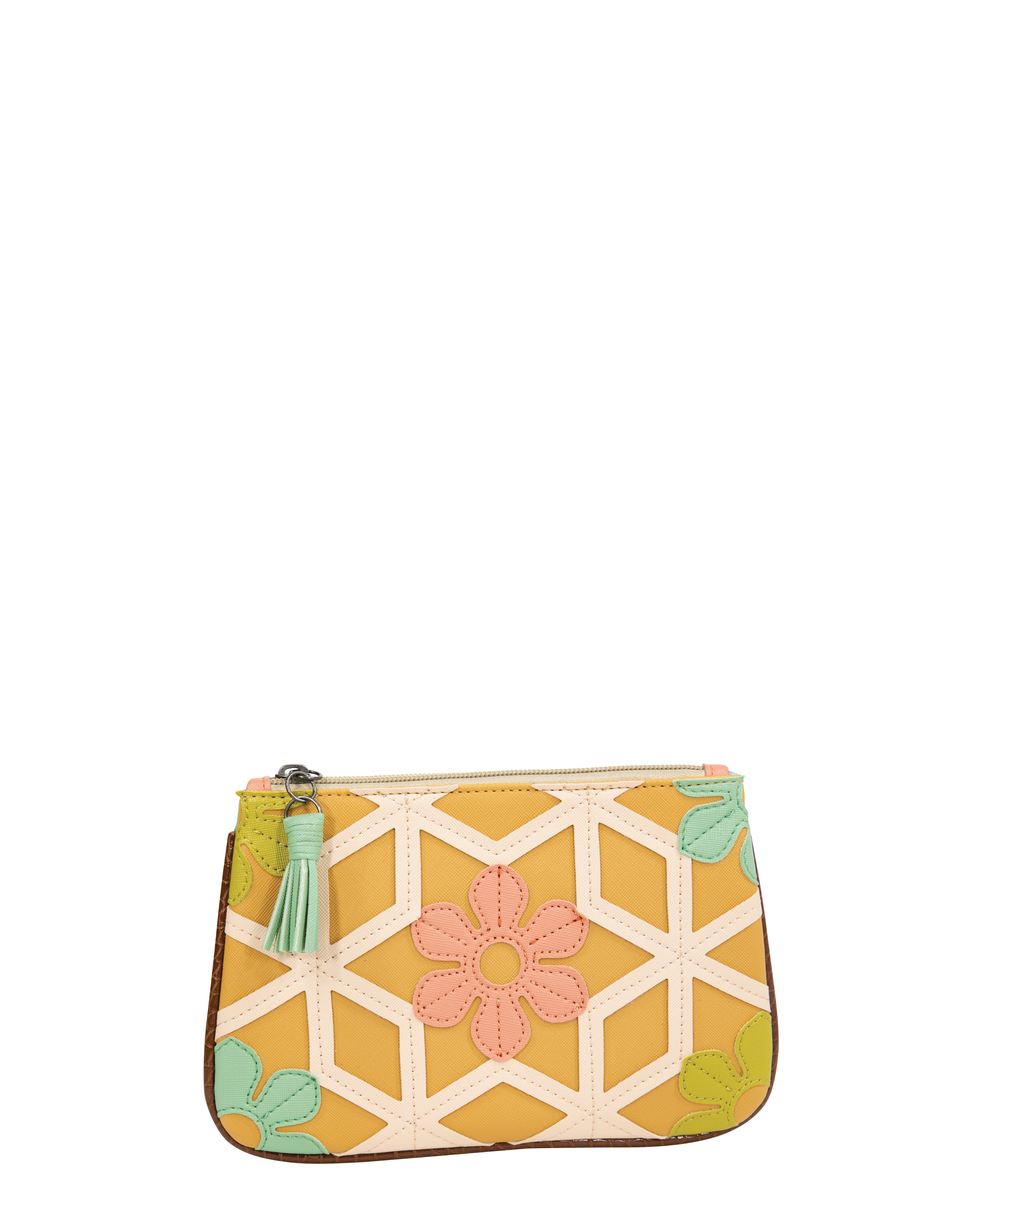 GINA Accessories Purse - Babylon